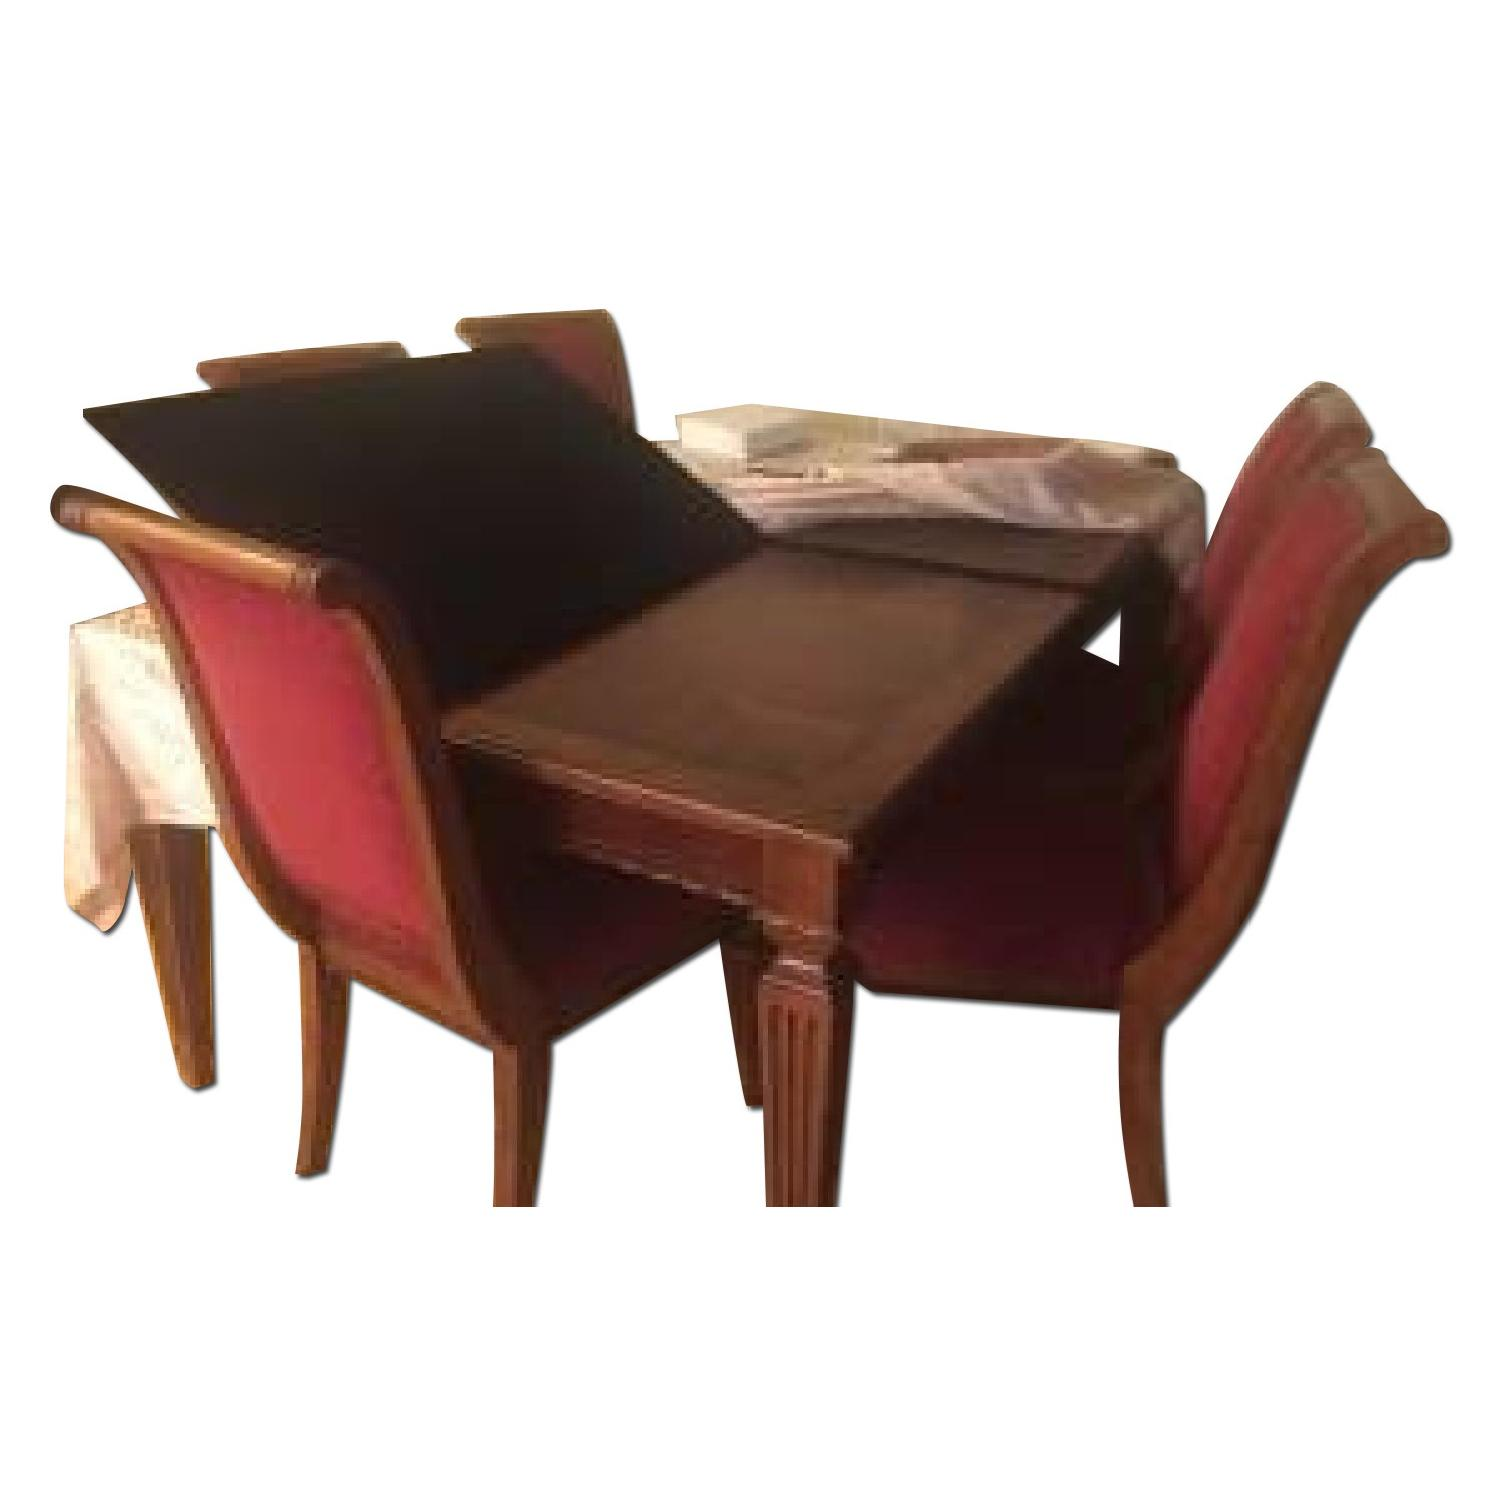 Ethan Allen Townhouse Dining Room Table w/ 6 Chairs - image-0